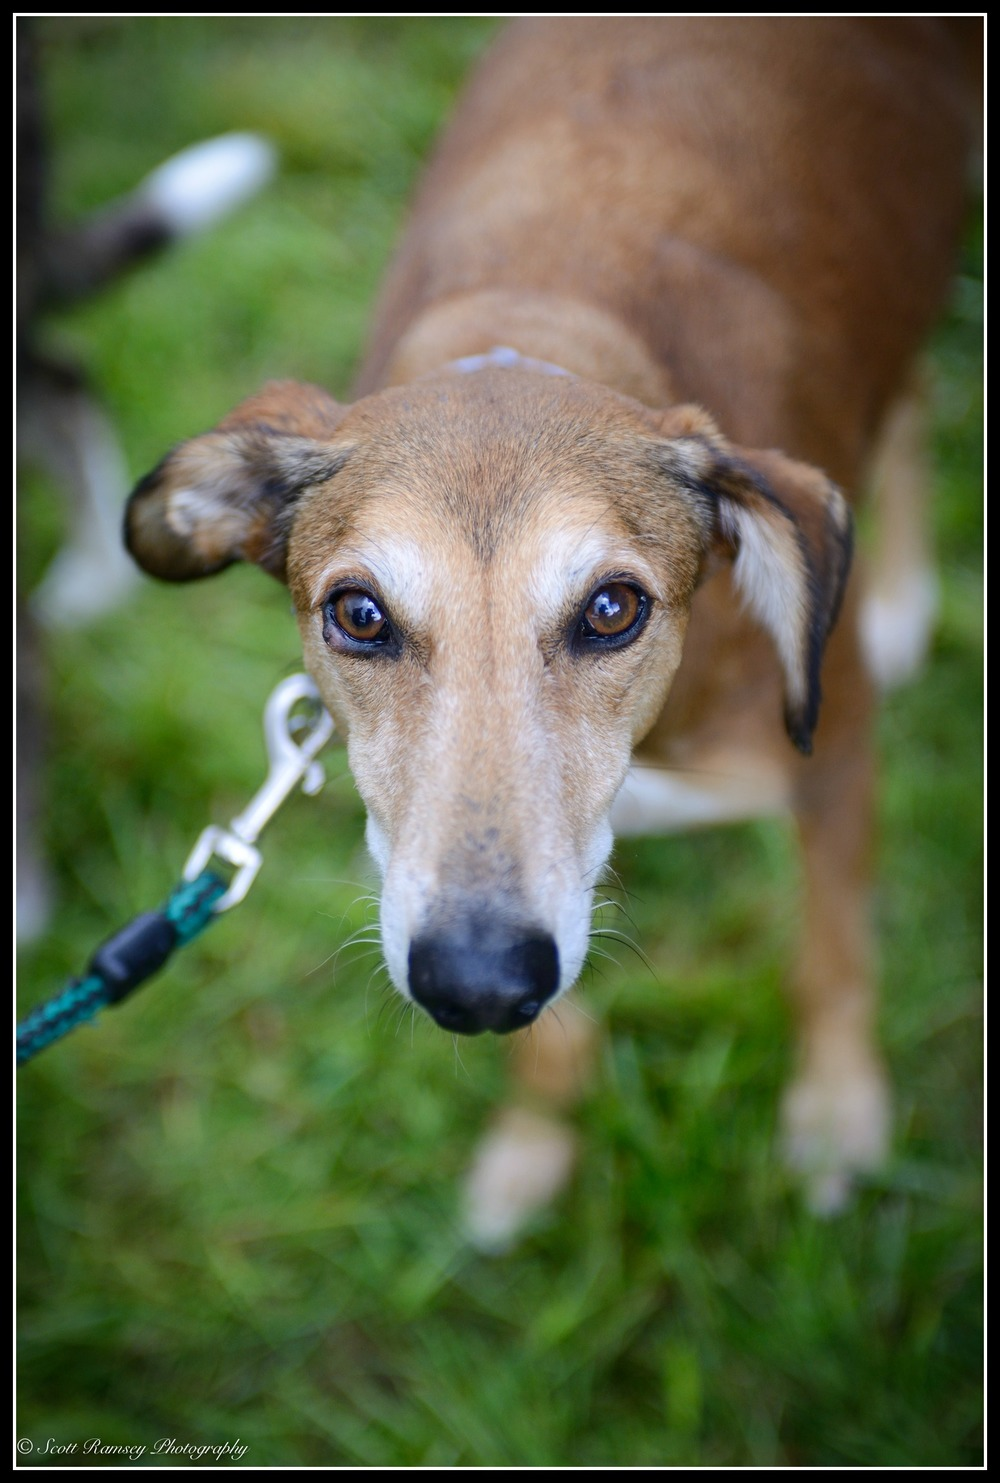 A lurcher dog called Little Prince Elmer.